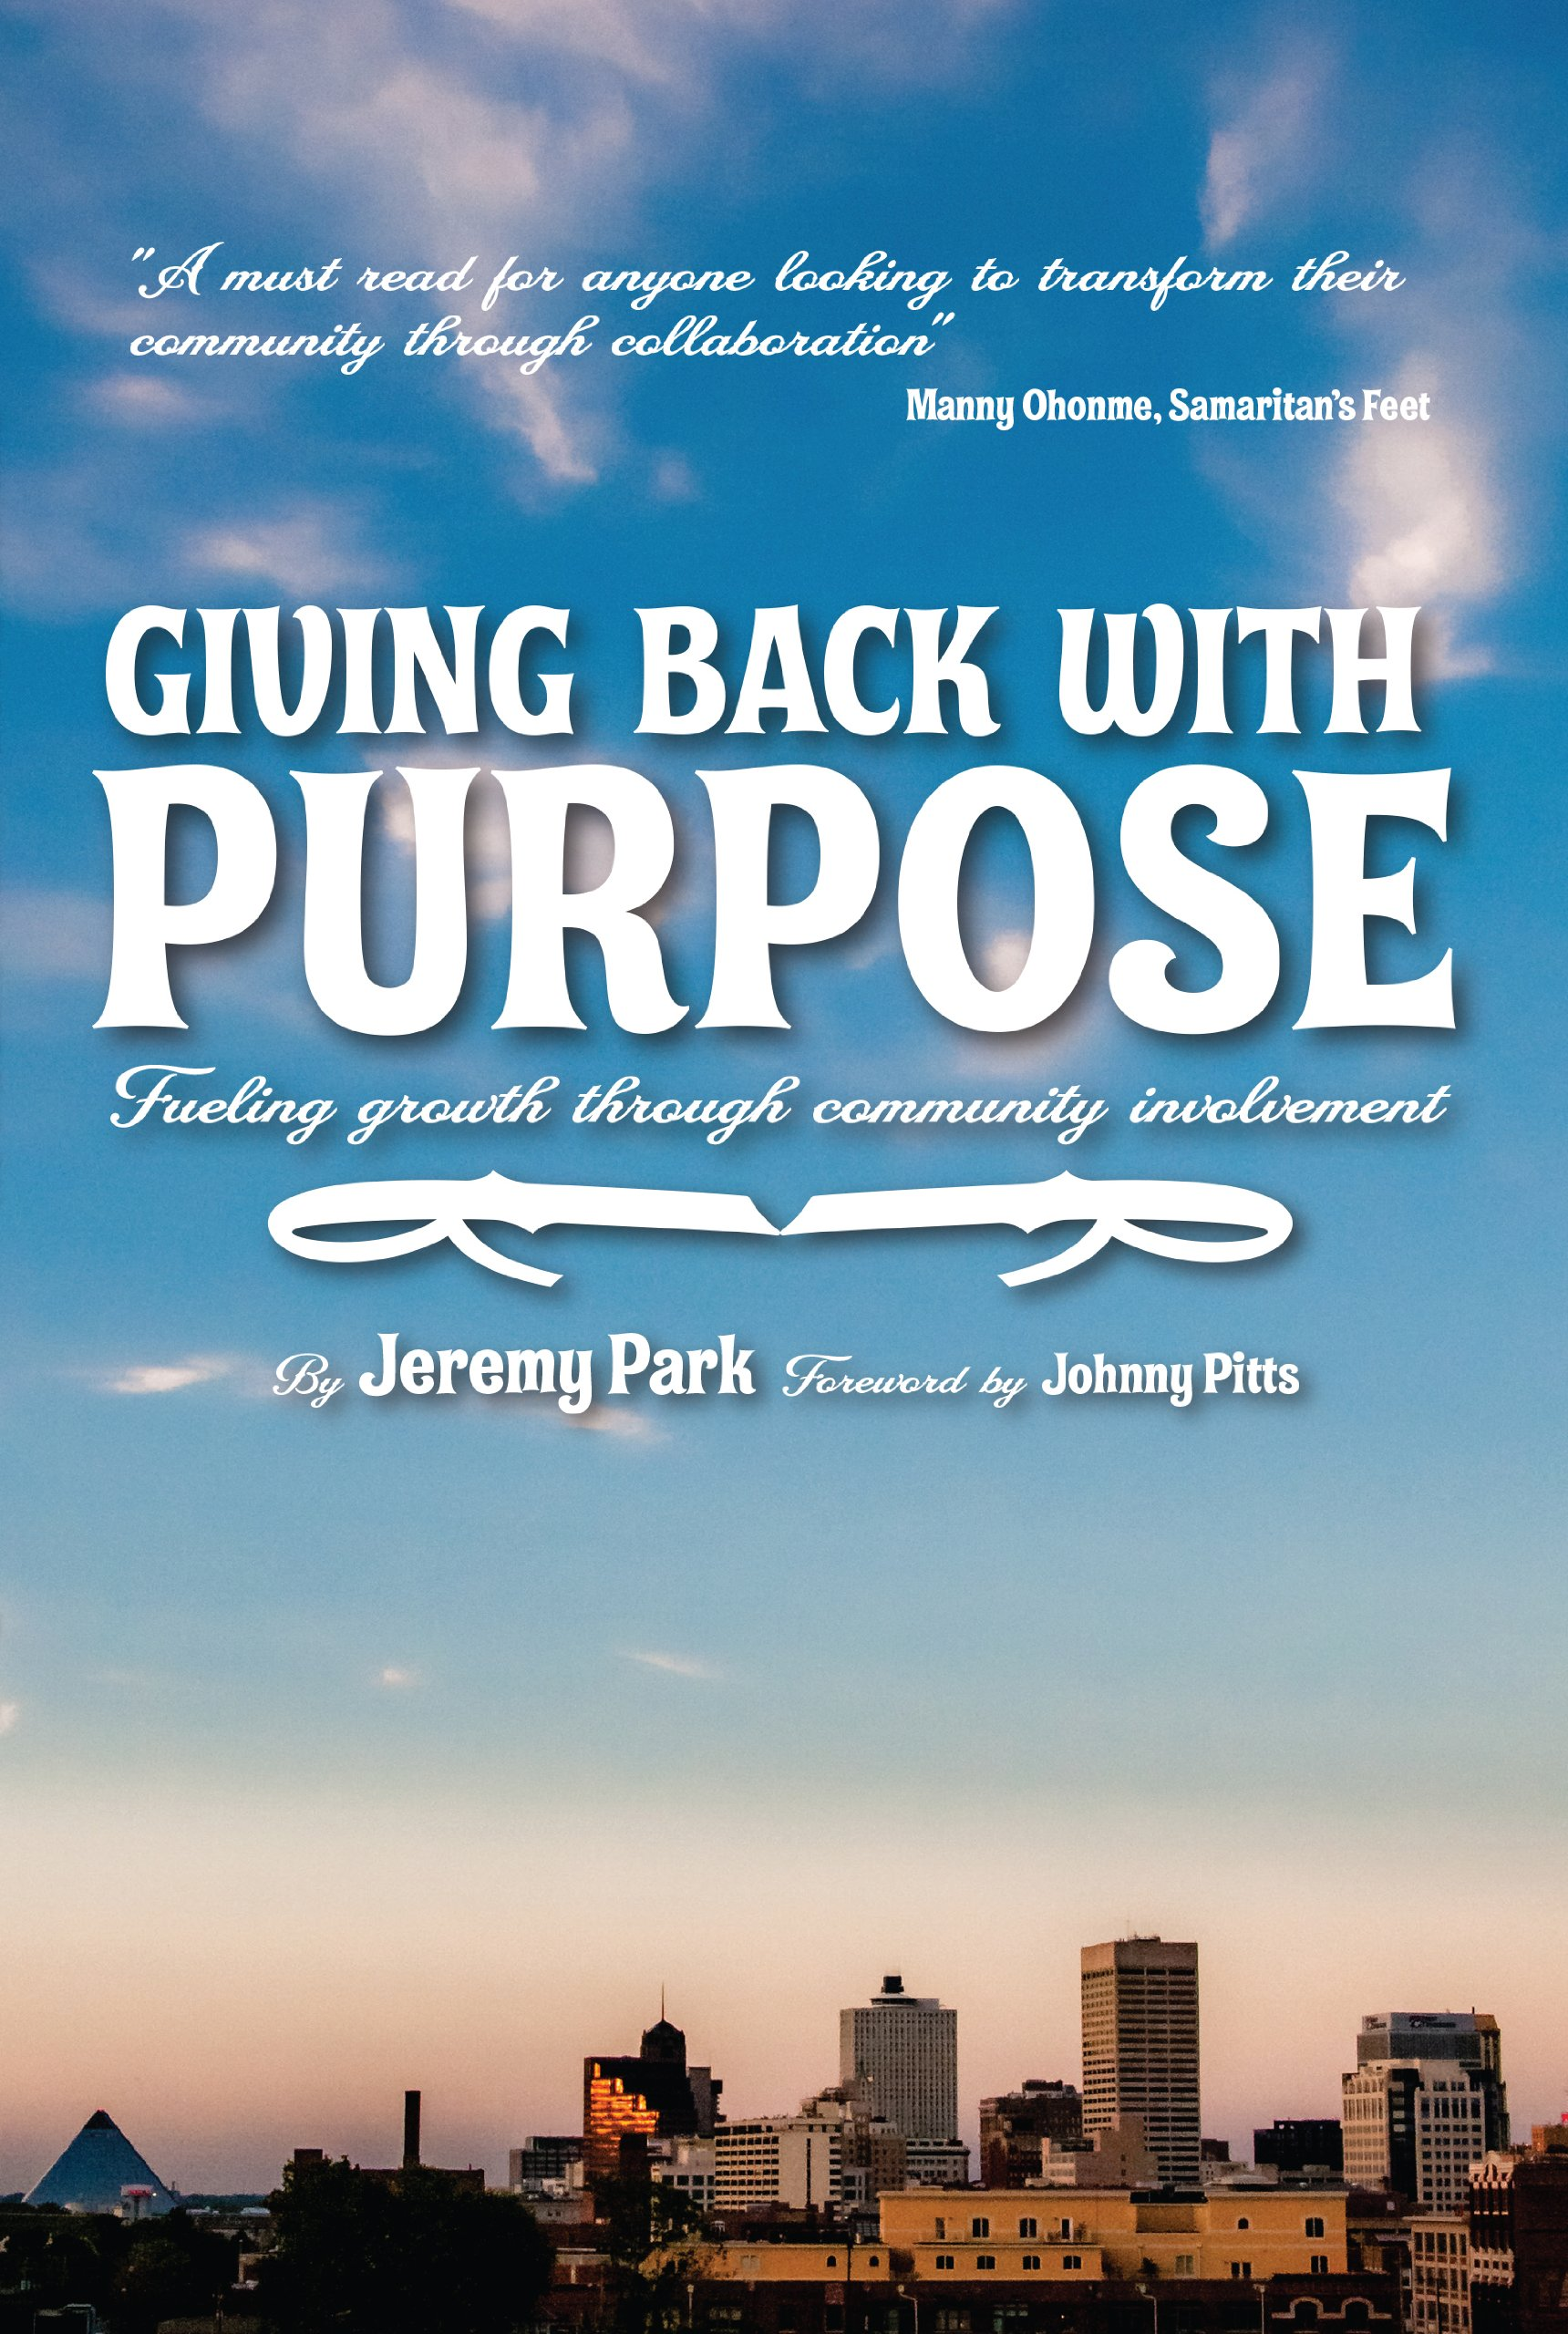 Giving Back With Purpose: Fueling Growth Through Community Involvement PDF